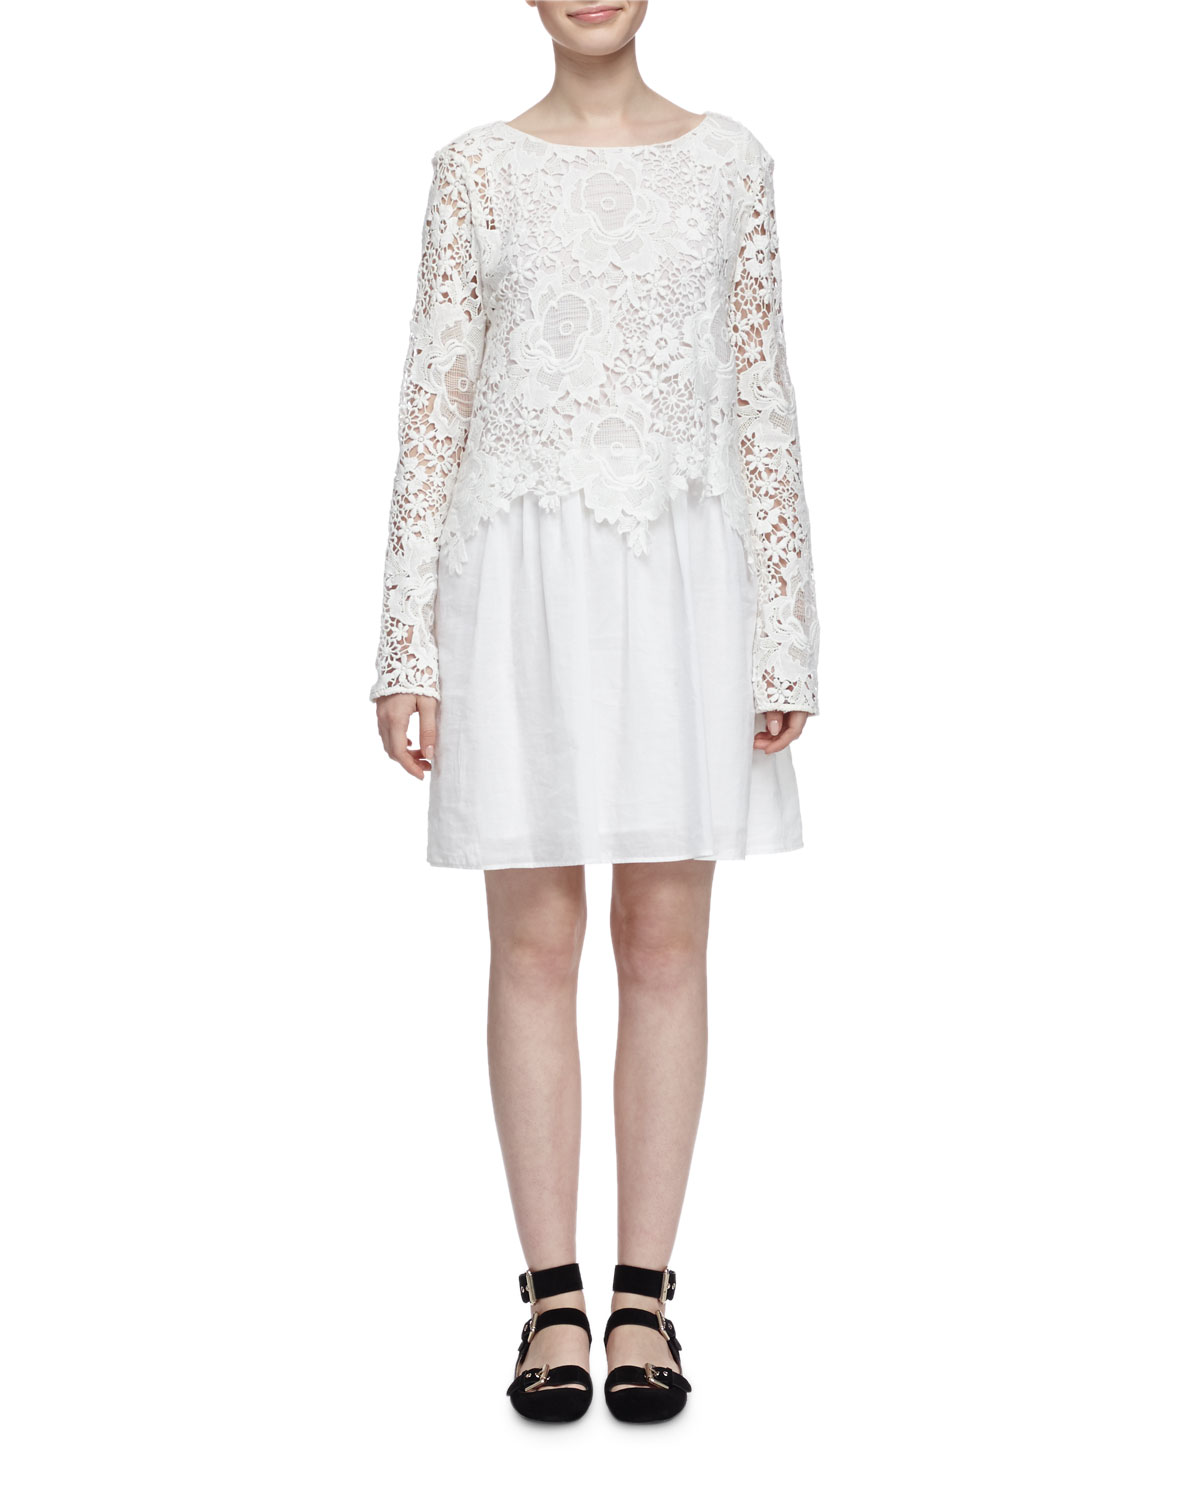 83aabda4f6cde5 See by Chloe Floral Lace and Voile Long-Sleeve Dress